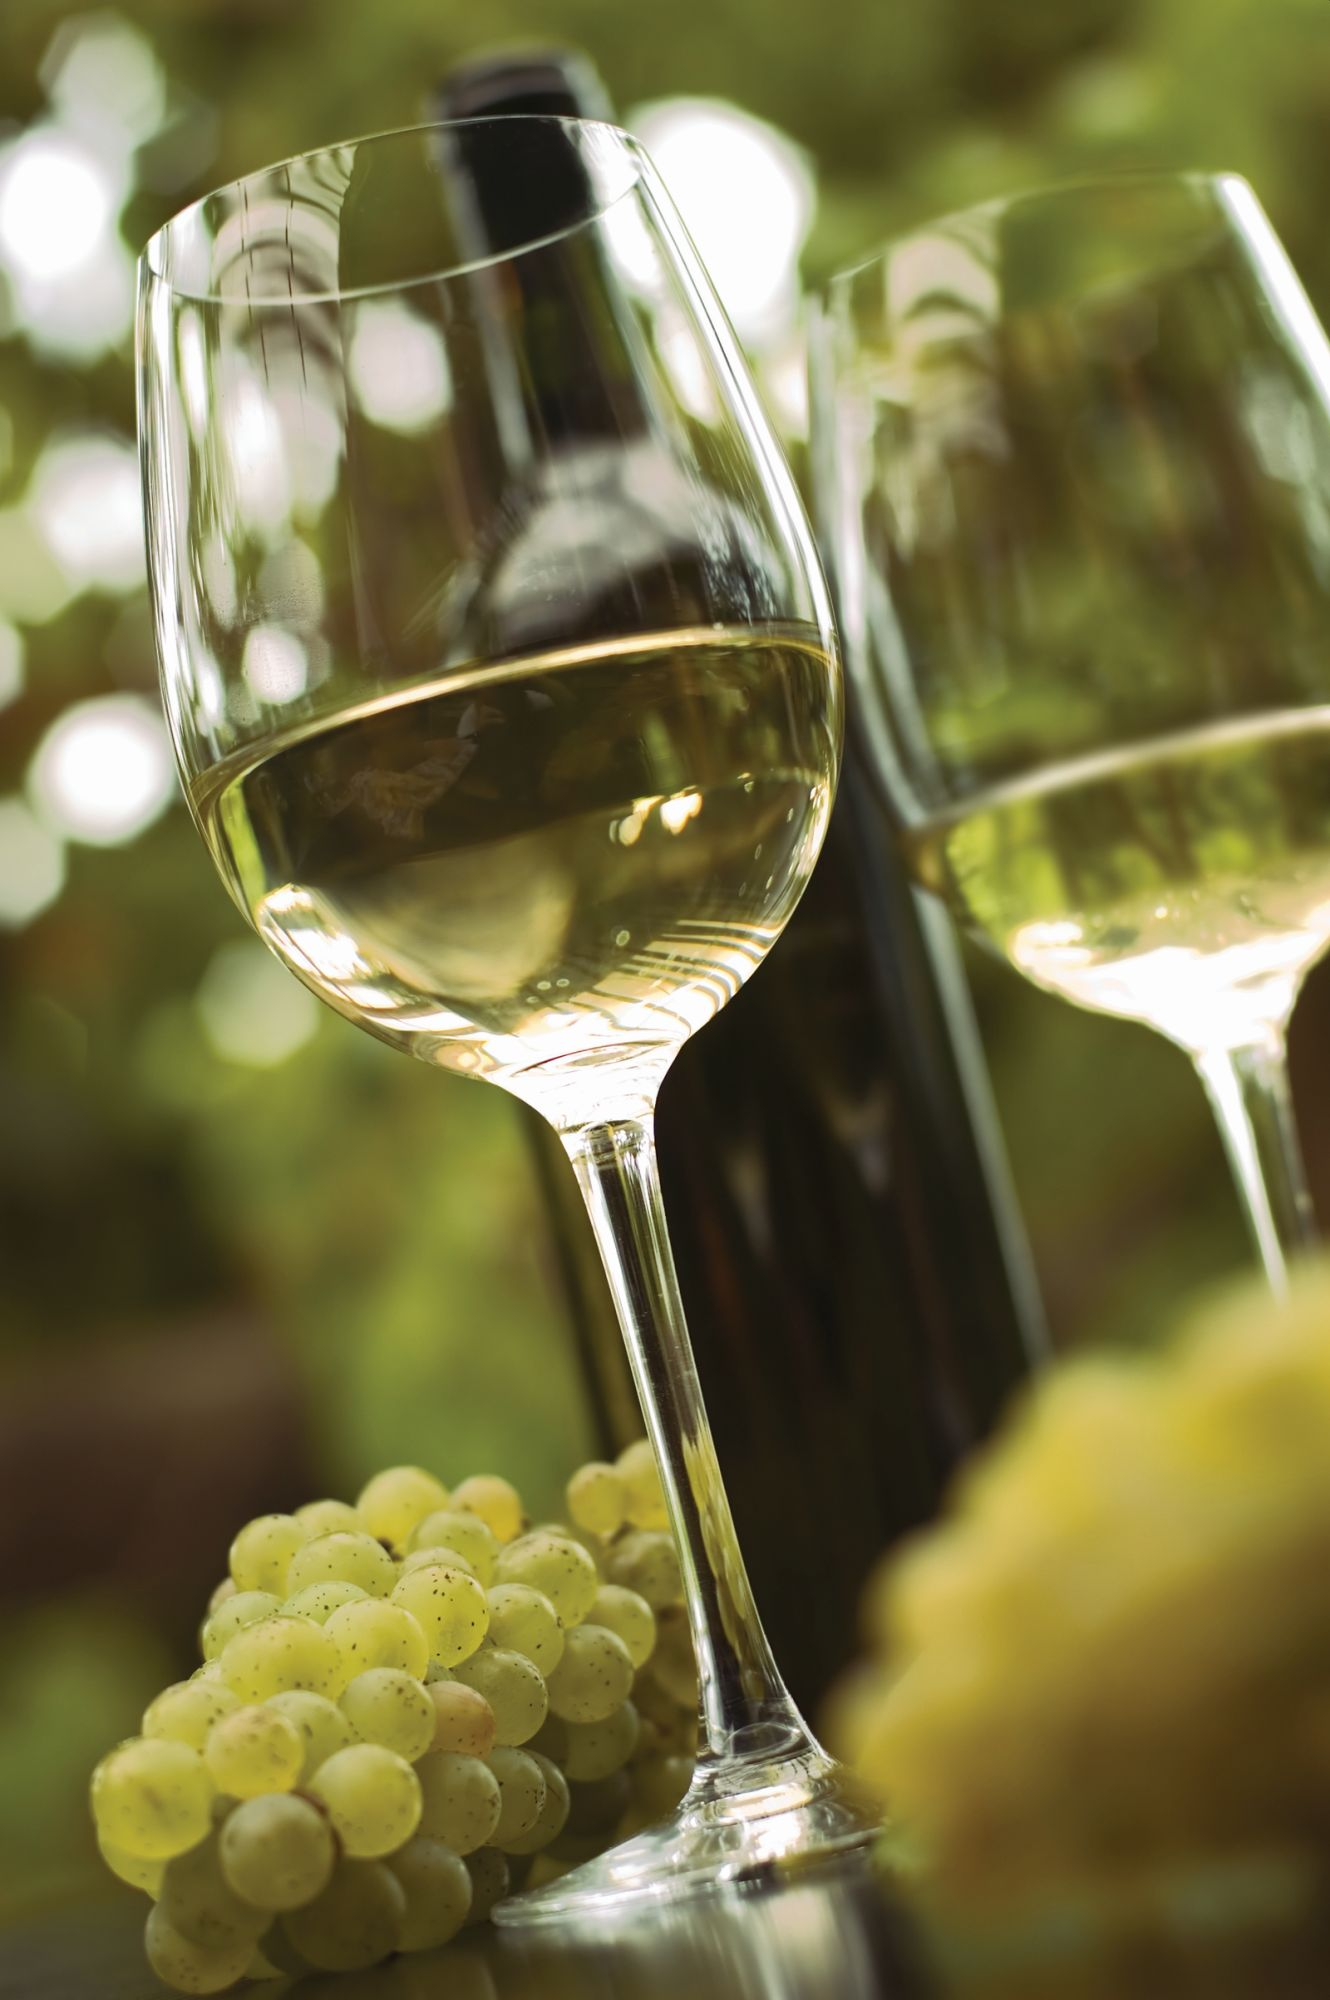 Glass of white wine presented with a bunch of white grapes